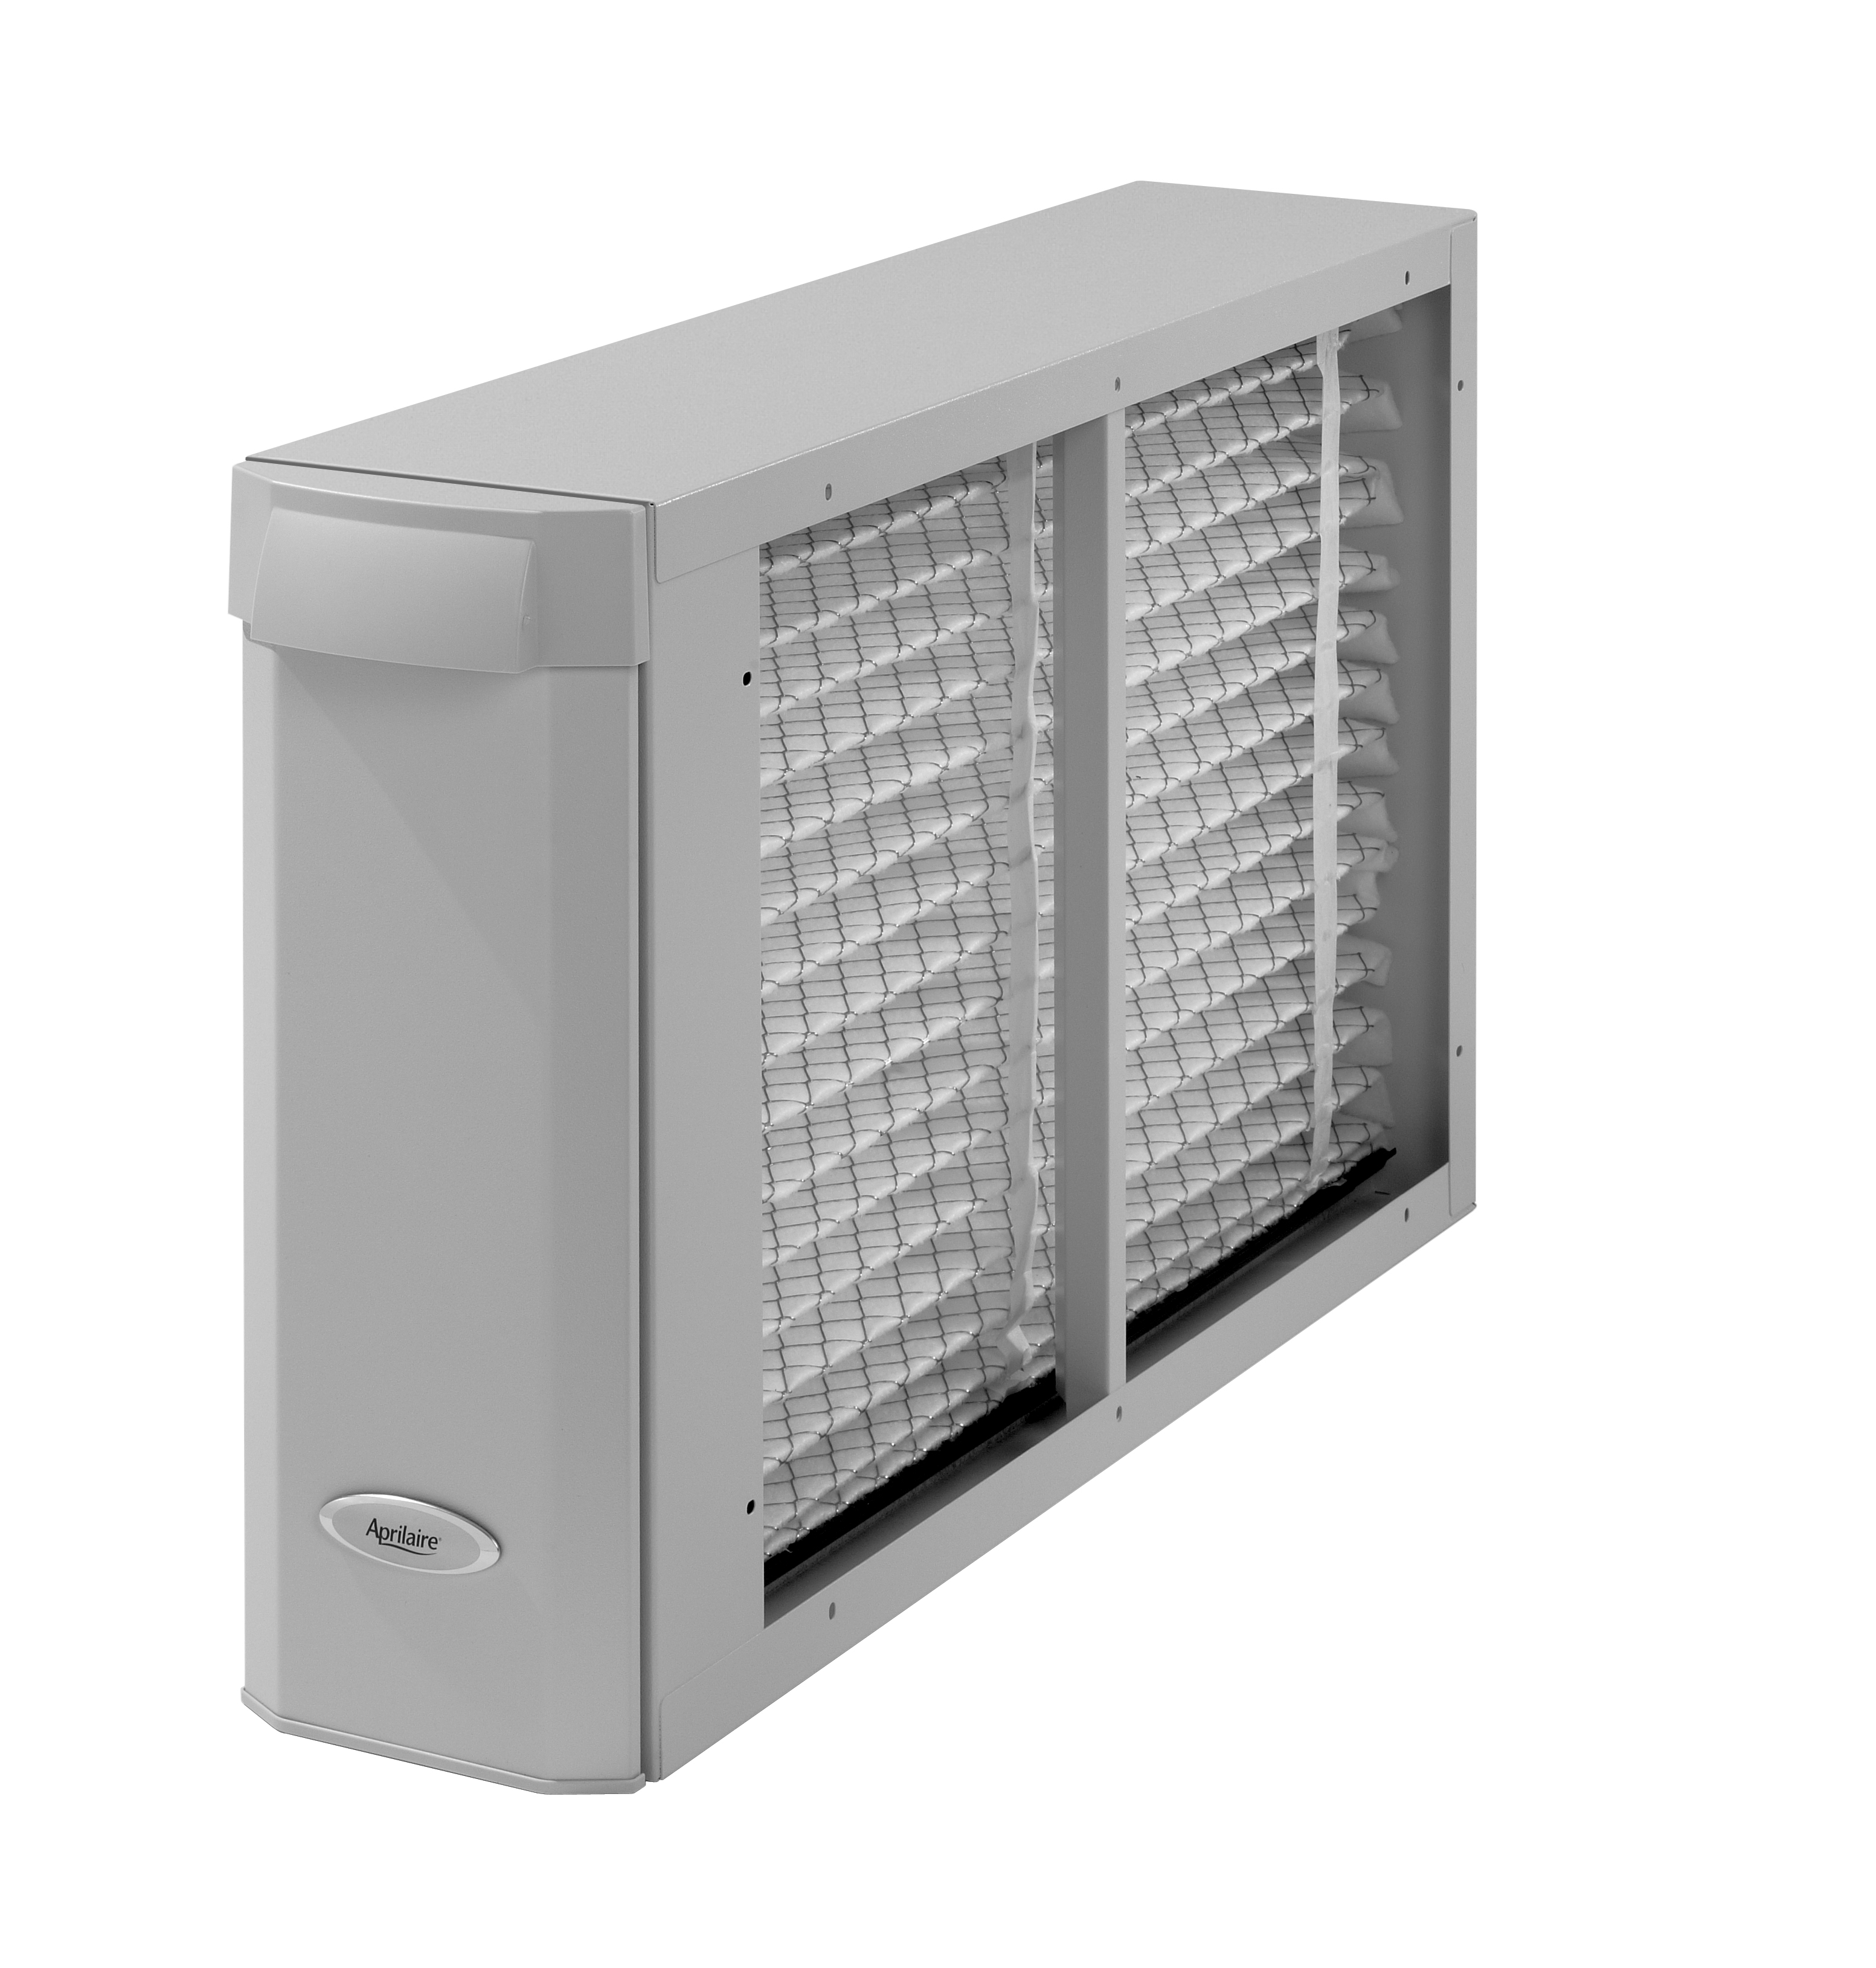 Aprilaire 2410 28 1 16W x 6 3 4D x 17 3 4H Inch Non Electric Whole House  Air Cleaner